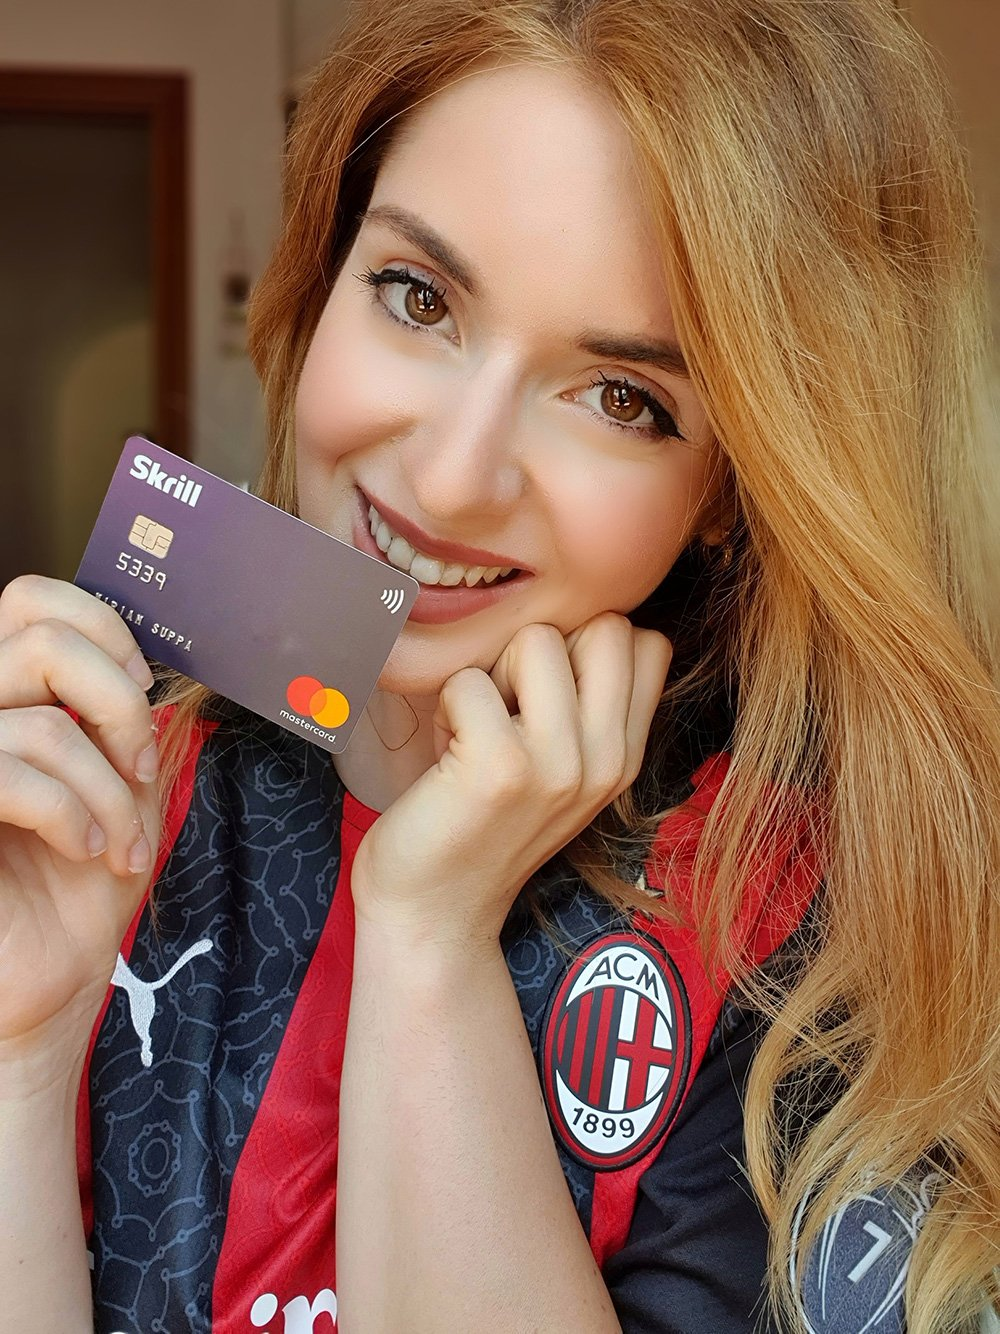 Miriam Suppa holds her Skrill Card, which she used to pay for her kit.